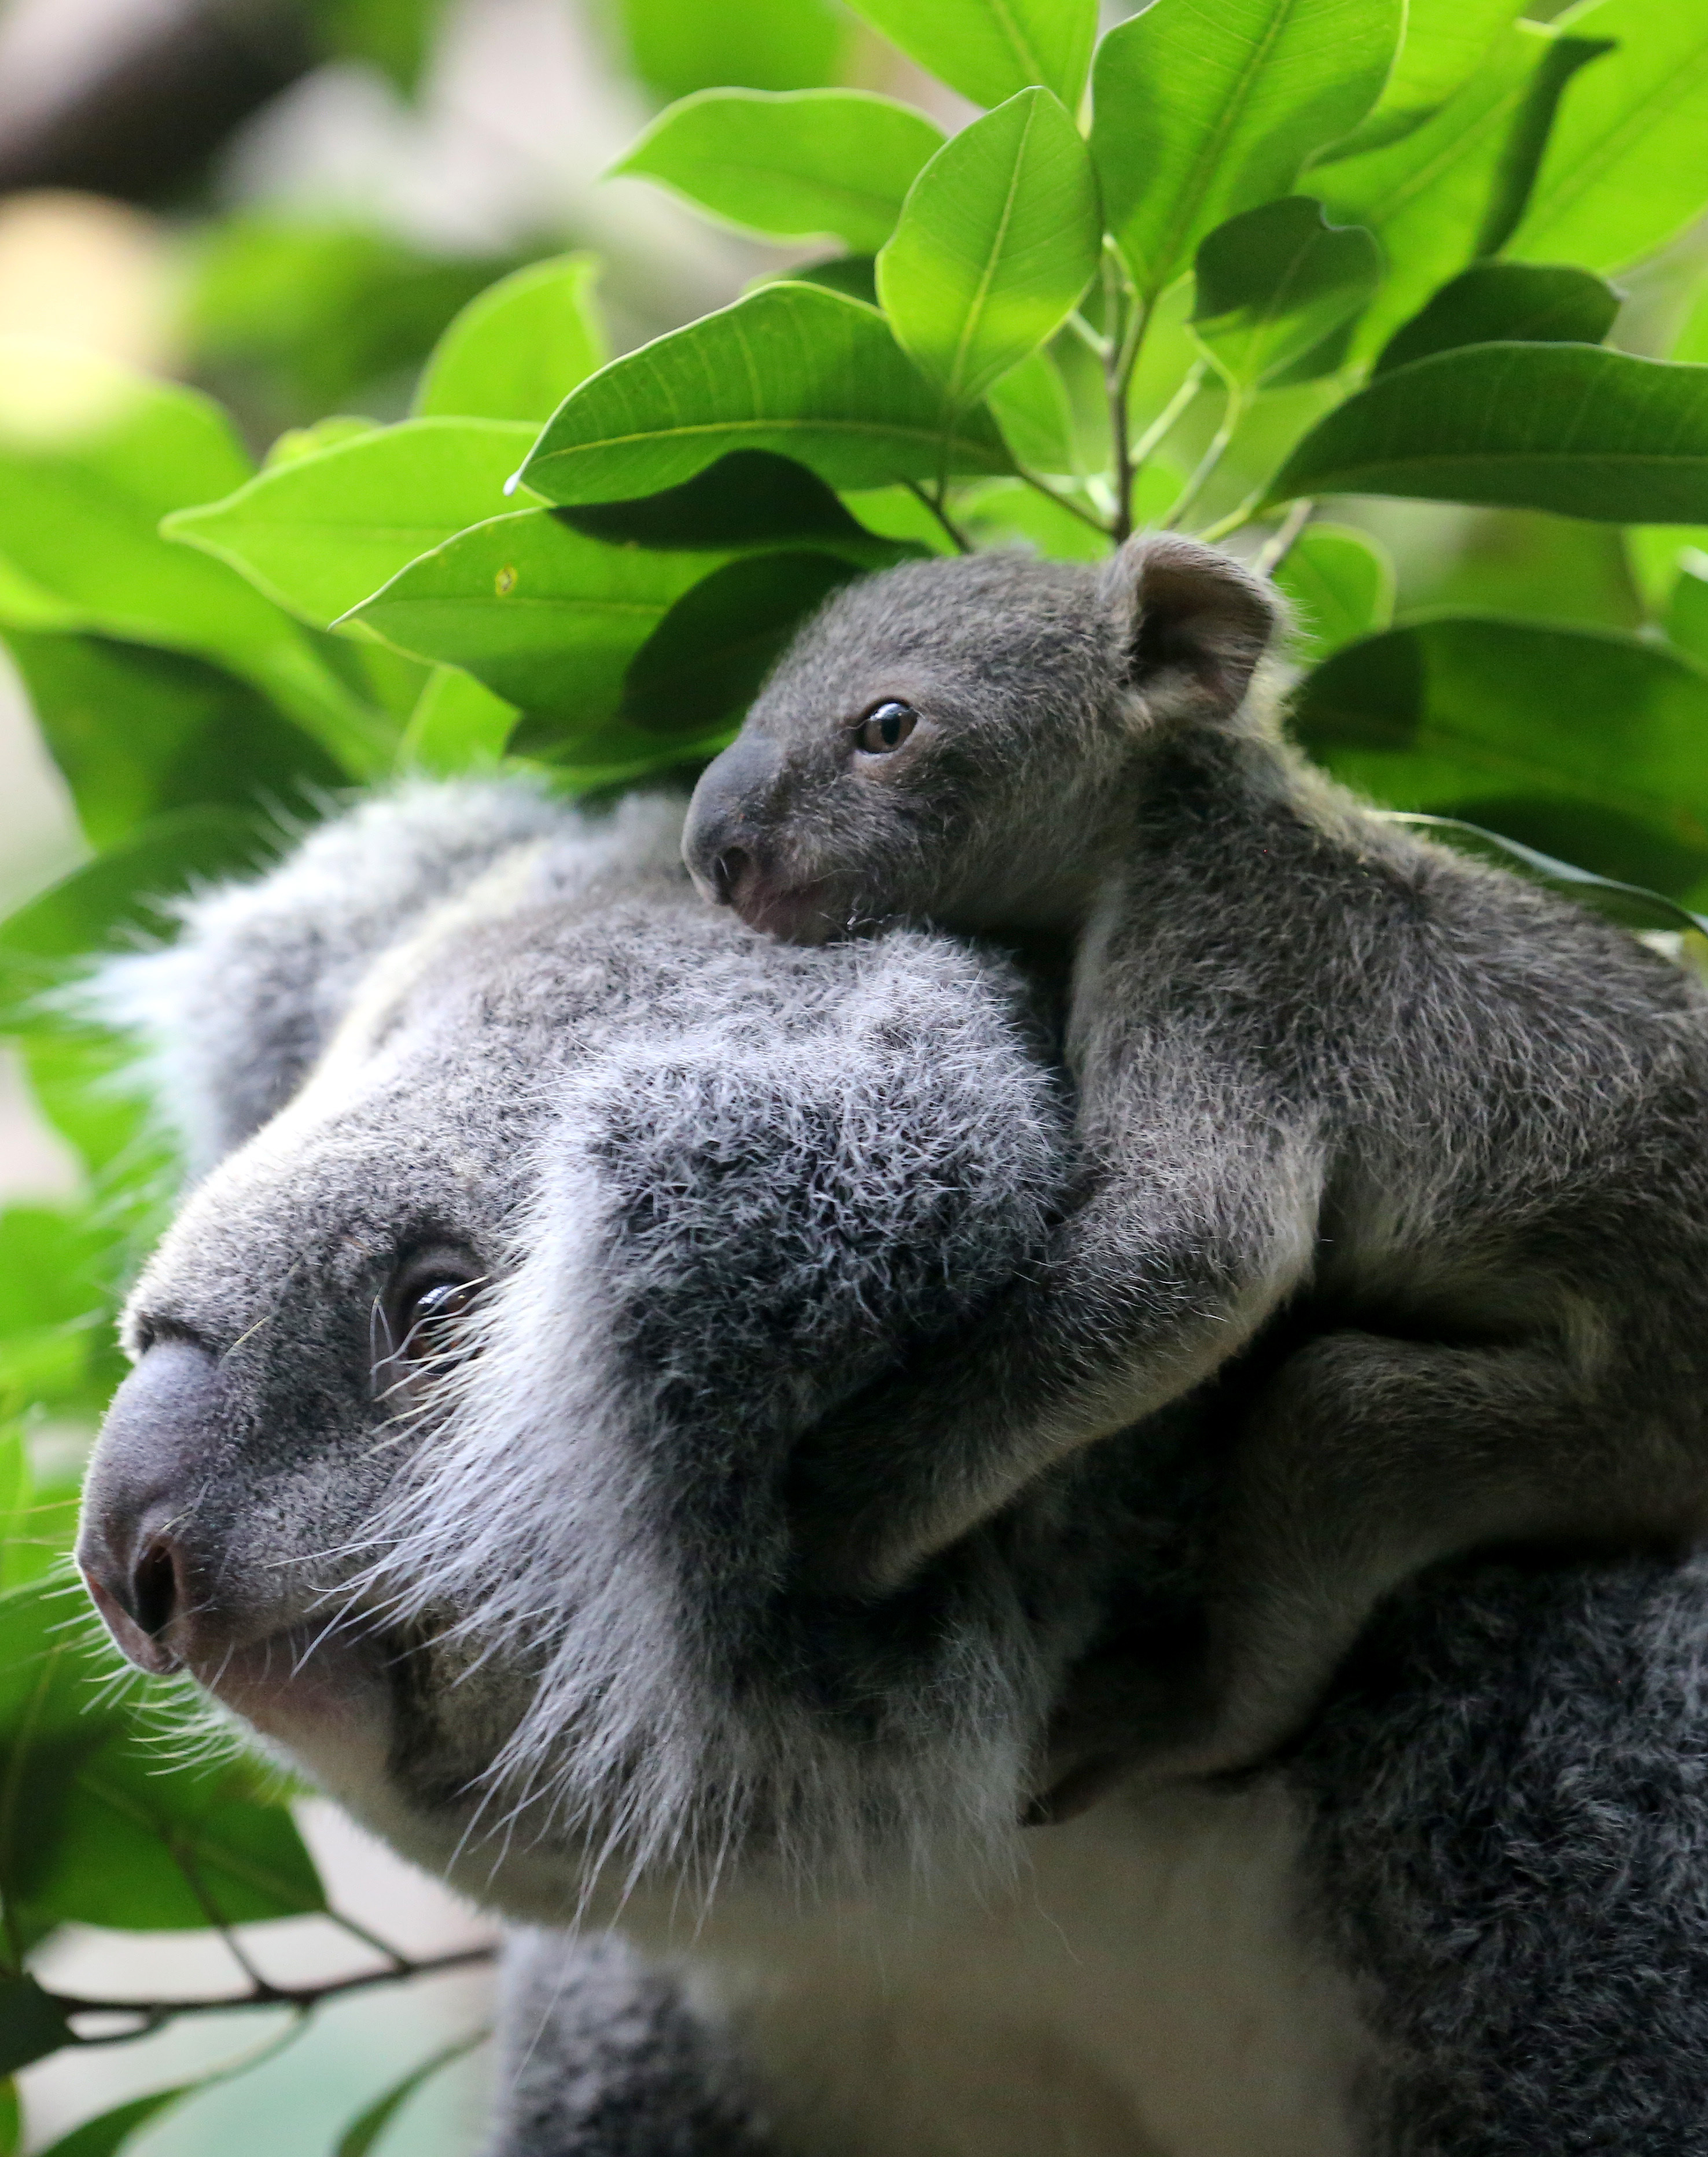 A six month old female baby koala sits on her mother's head on January 22, 2014 at the zoo in Duisburg, Germany.